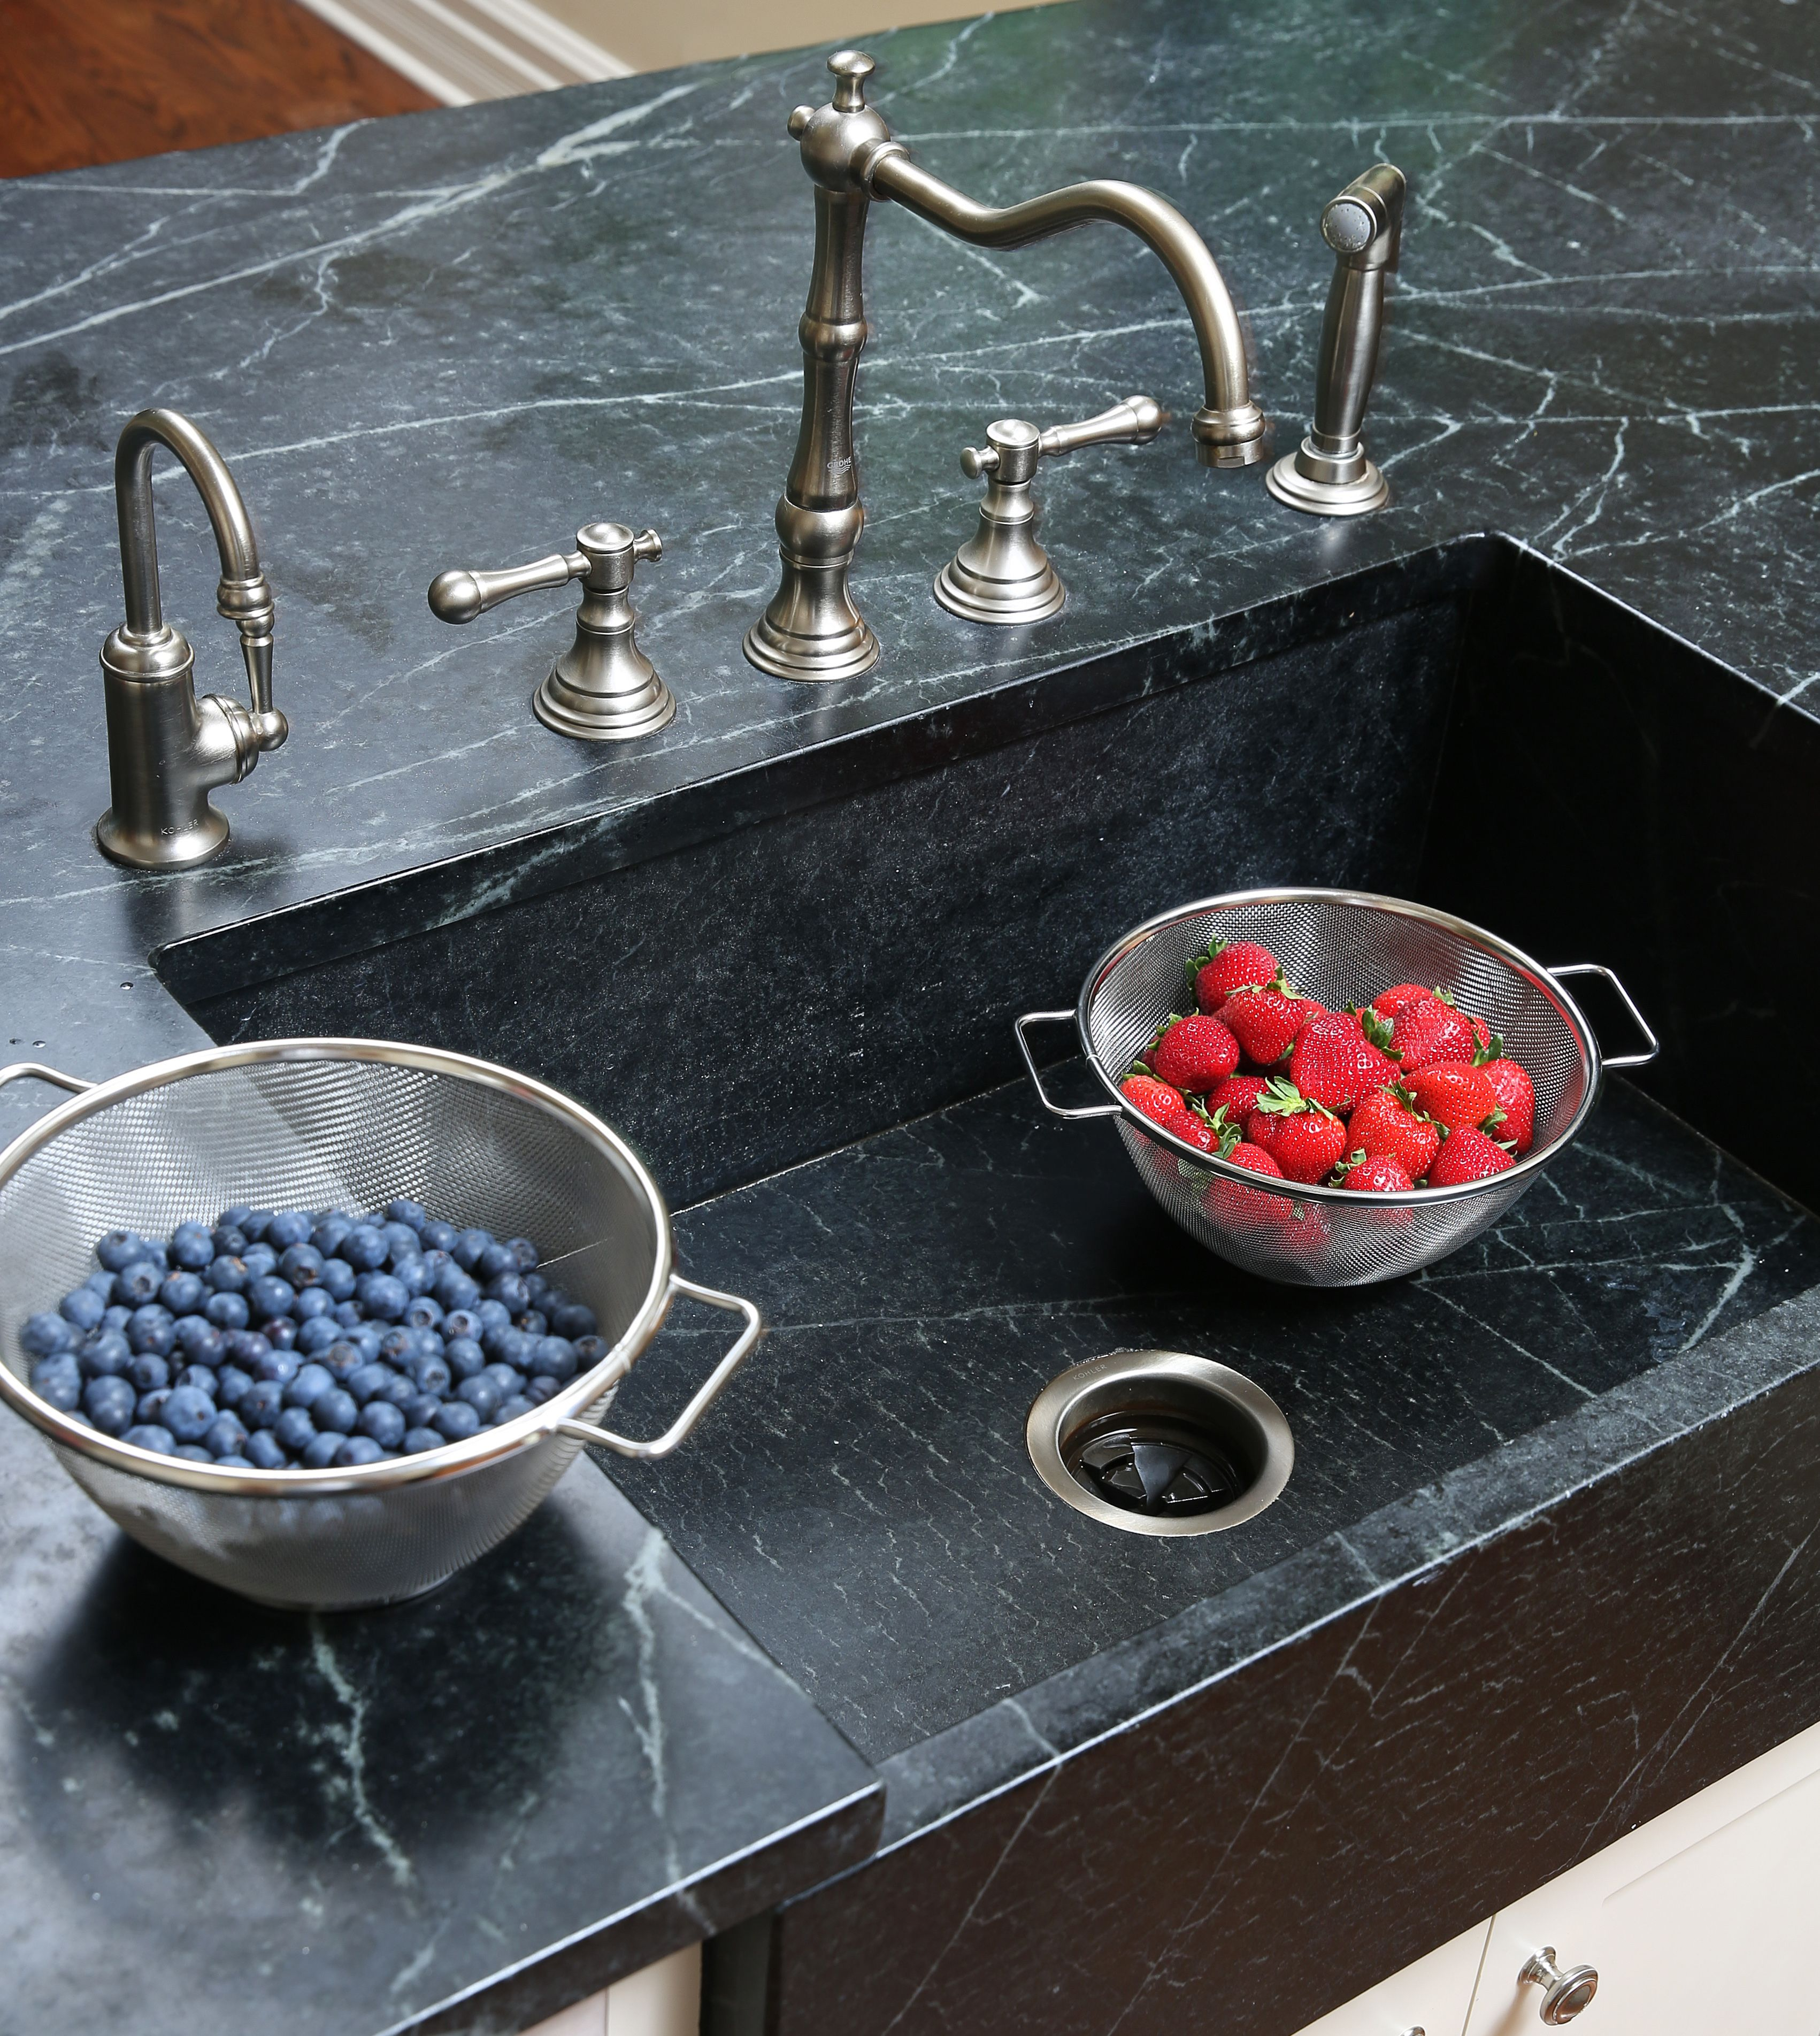 How To Reset Your Garbage Disposal With Images Garbage Disposal Double Bowl Sink